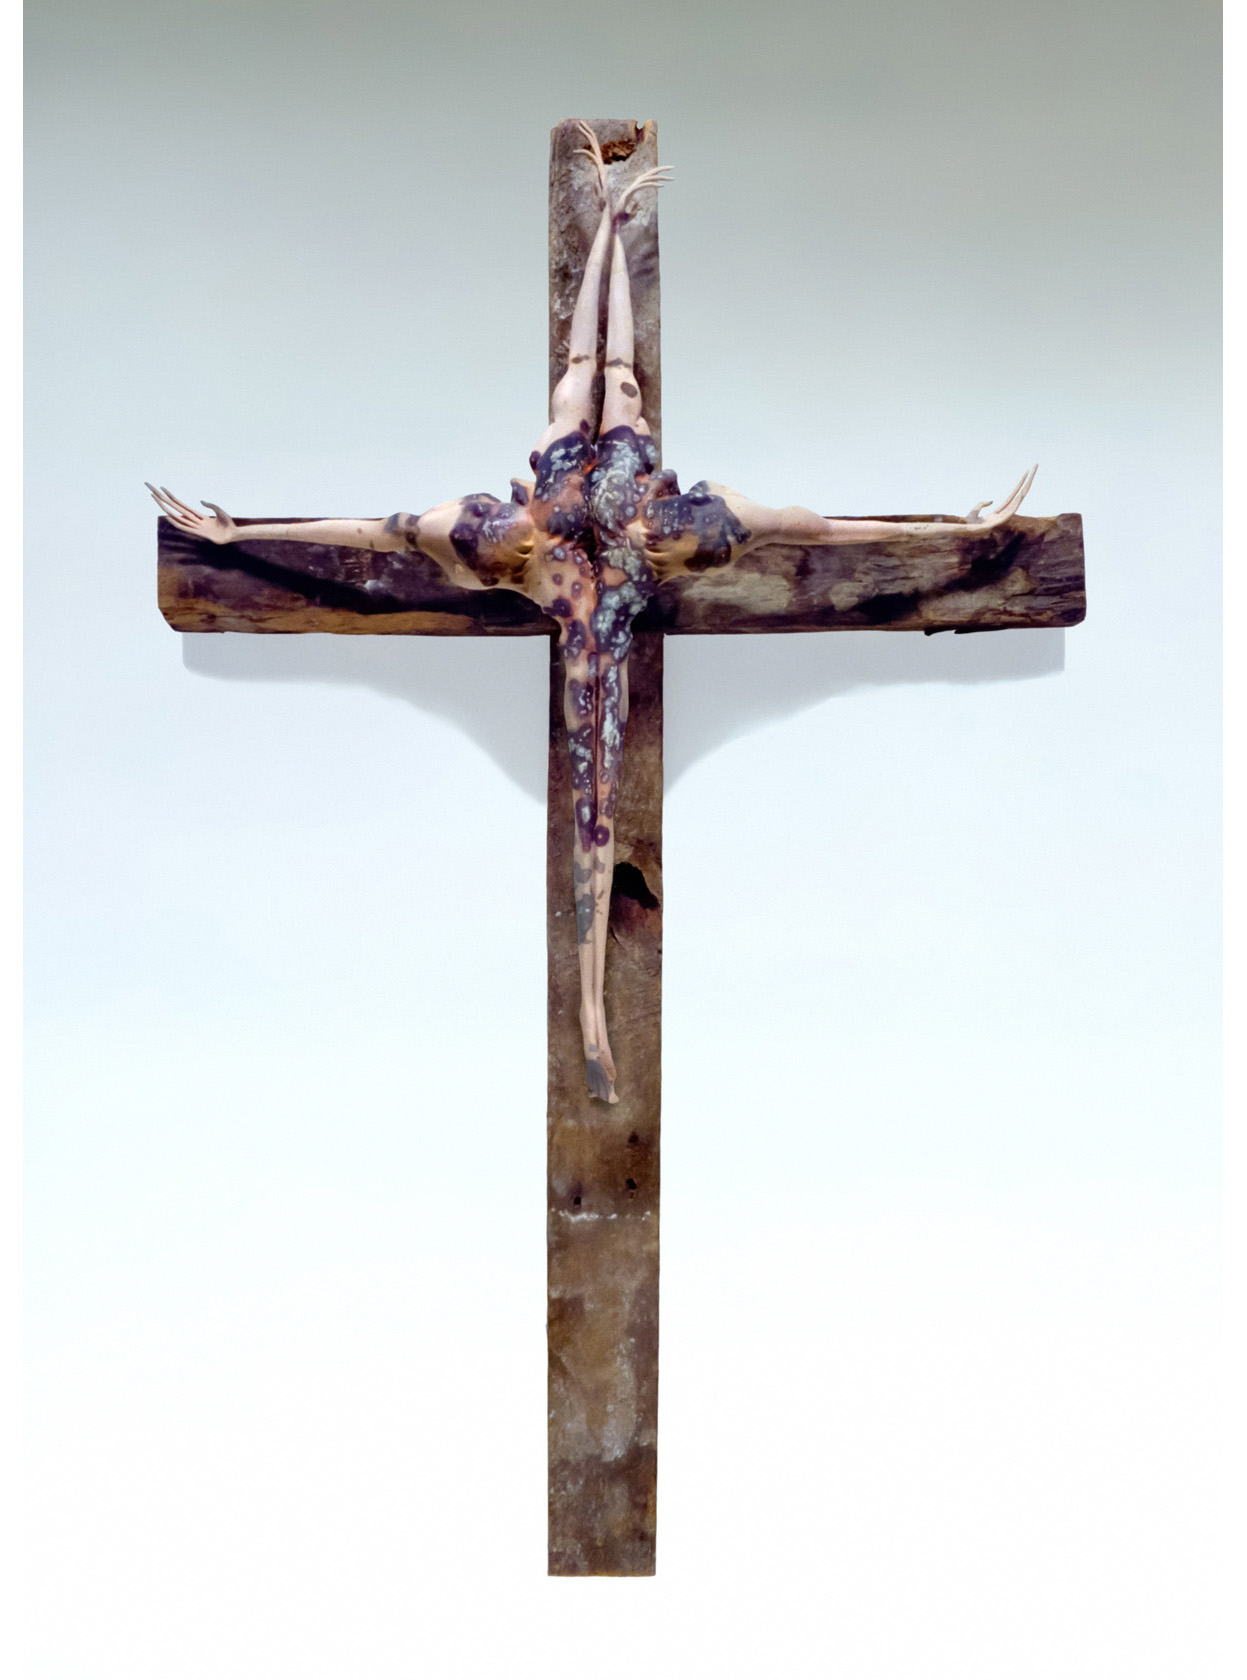 'Cruciform'. Earthenware Terra Sigillata, wood wire. 1993